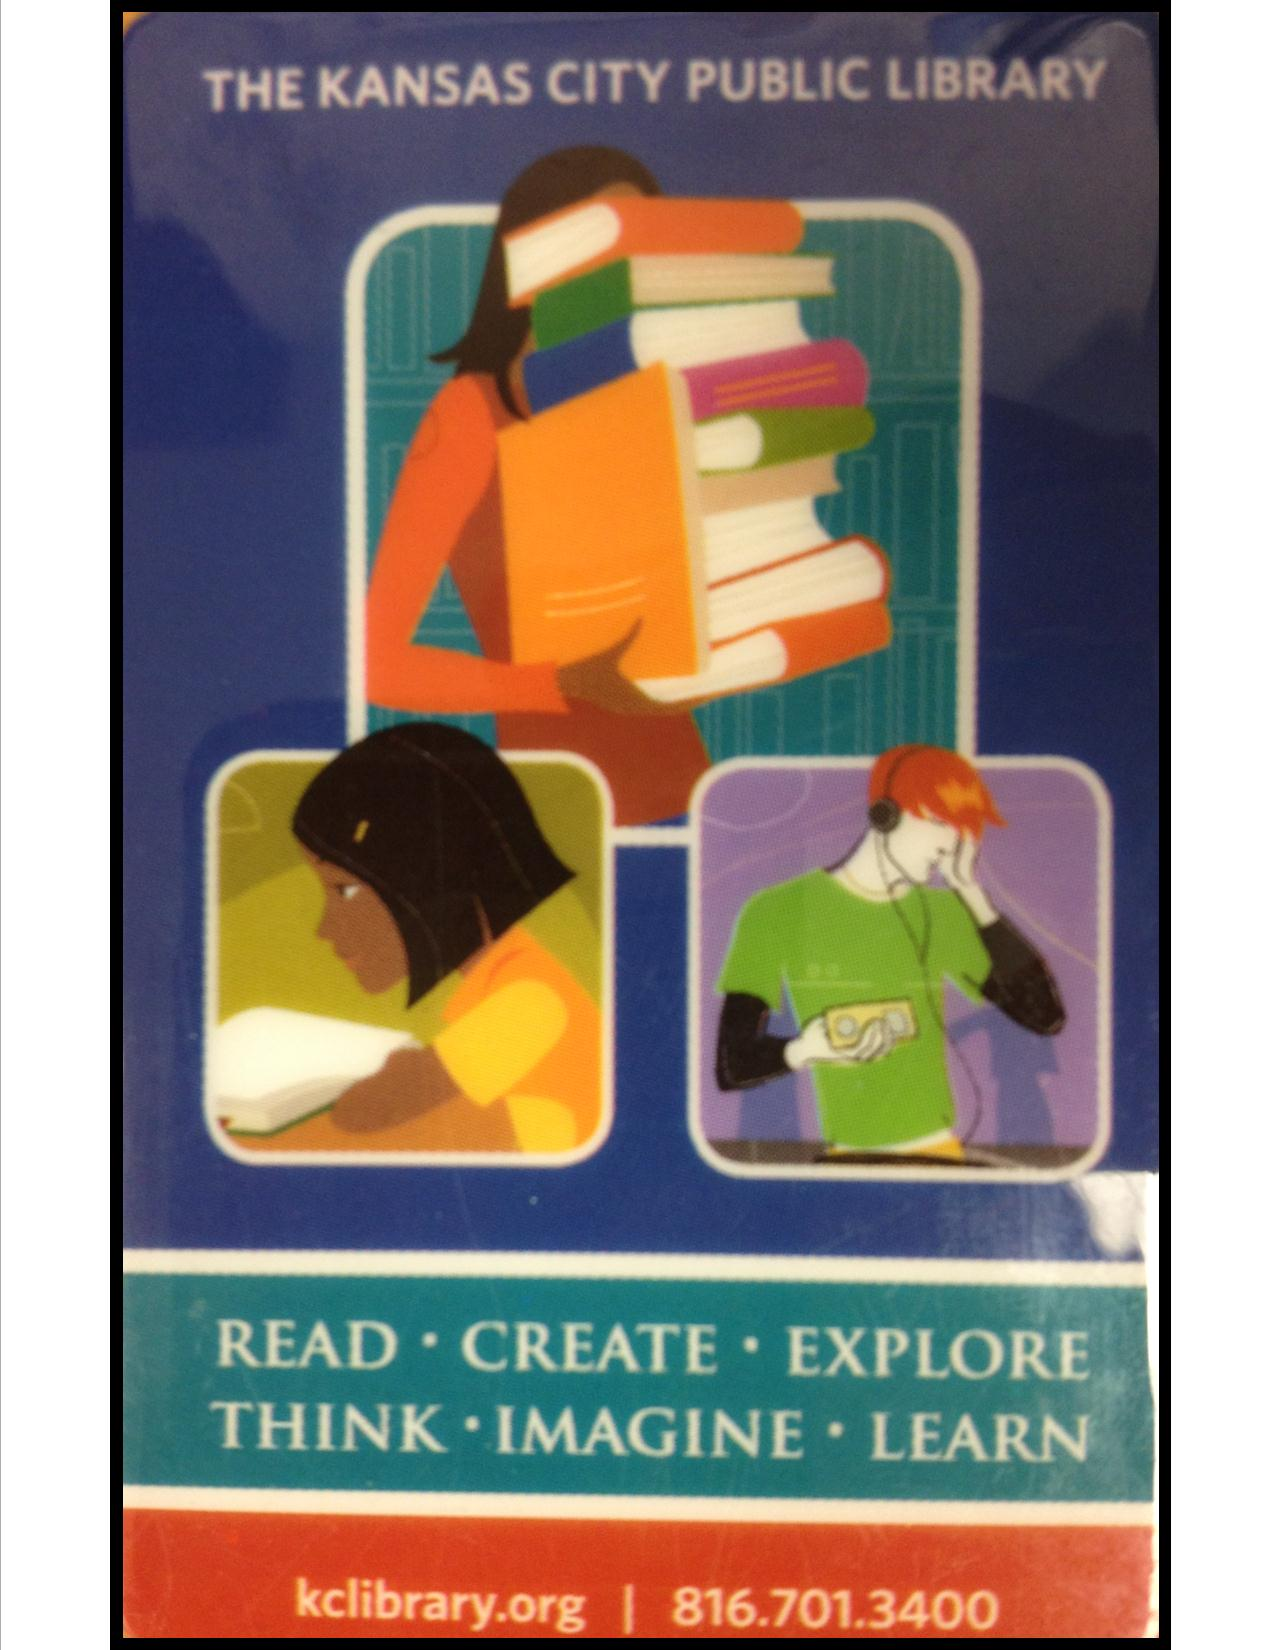 Kansas City Public Library poster